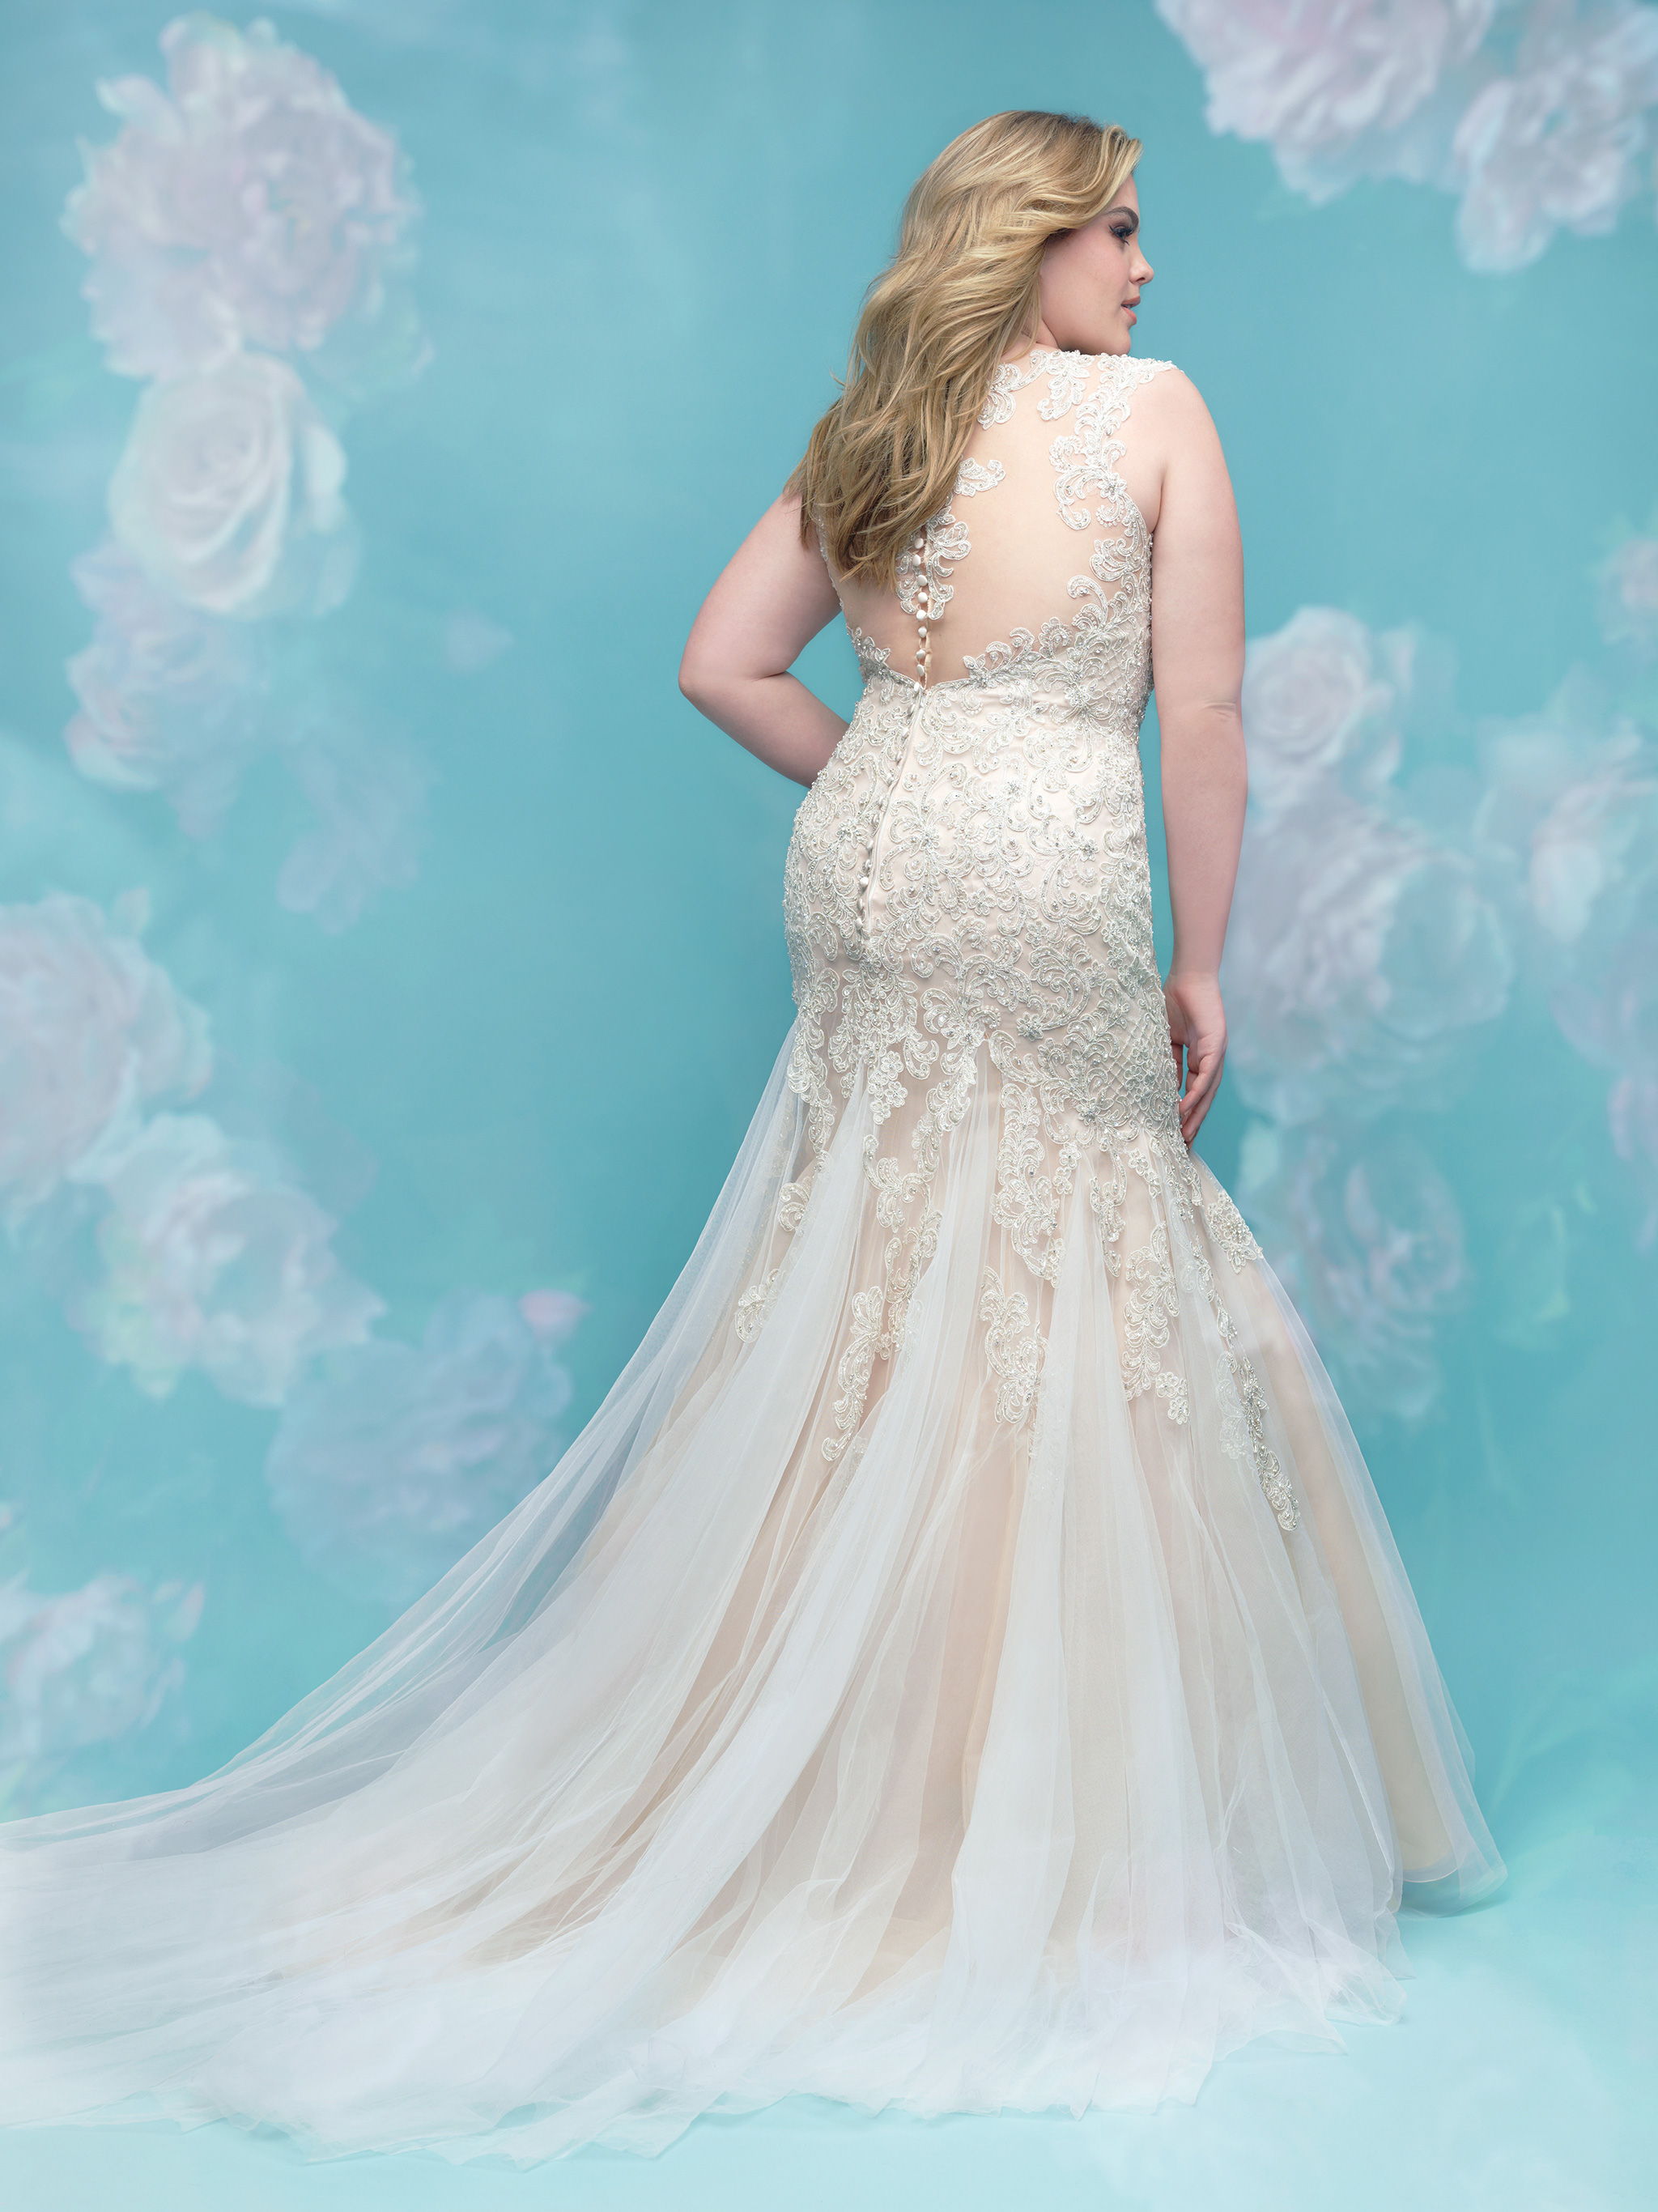 Beaded Lace Fit And Flare Sleeveless Wedding Dress | Kleinfeld Bridal